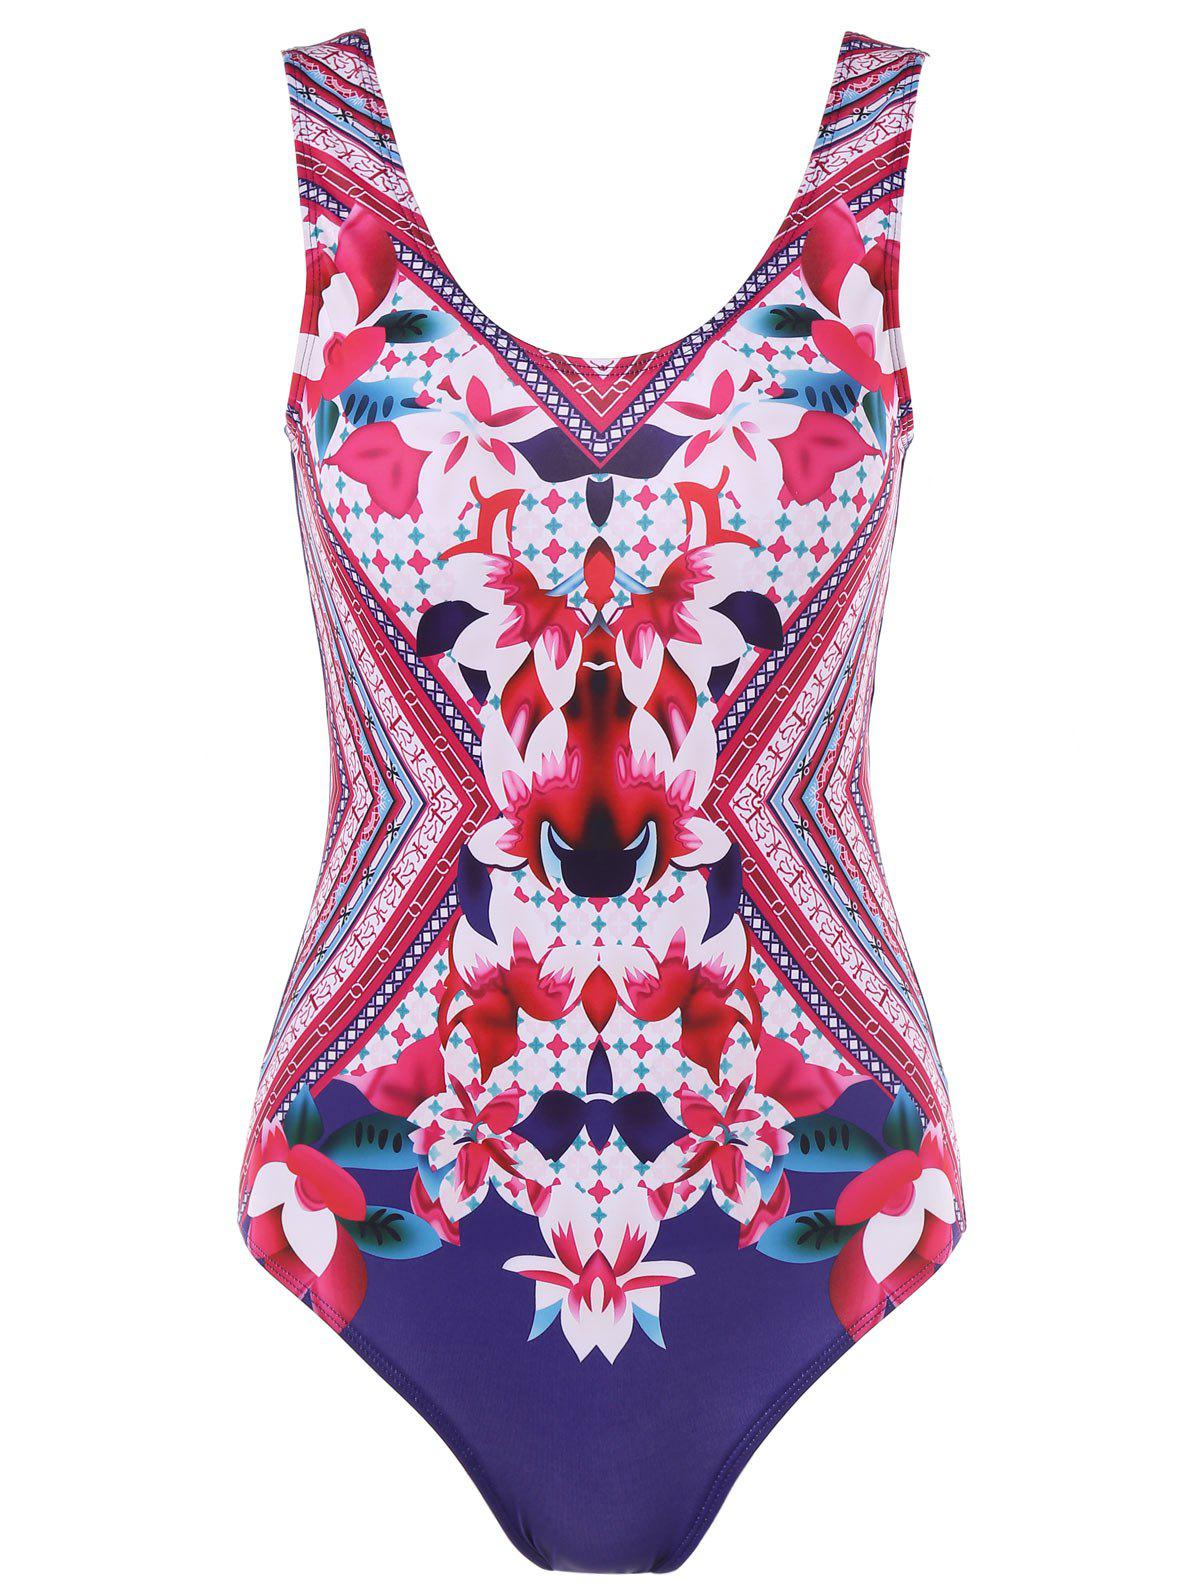 Floral U Backless One Piece Swimsuit - multicolor XL